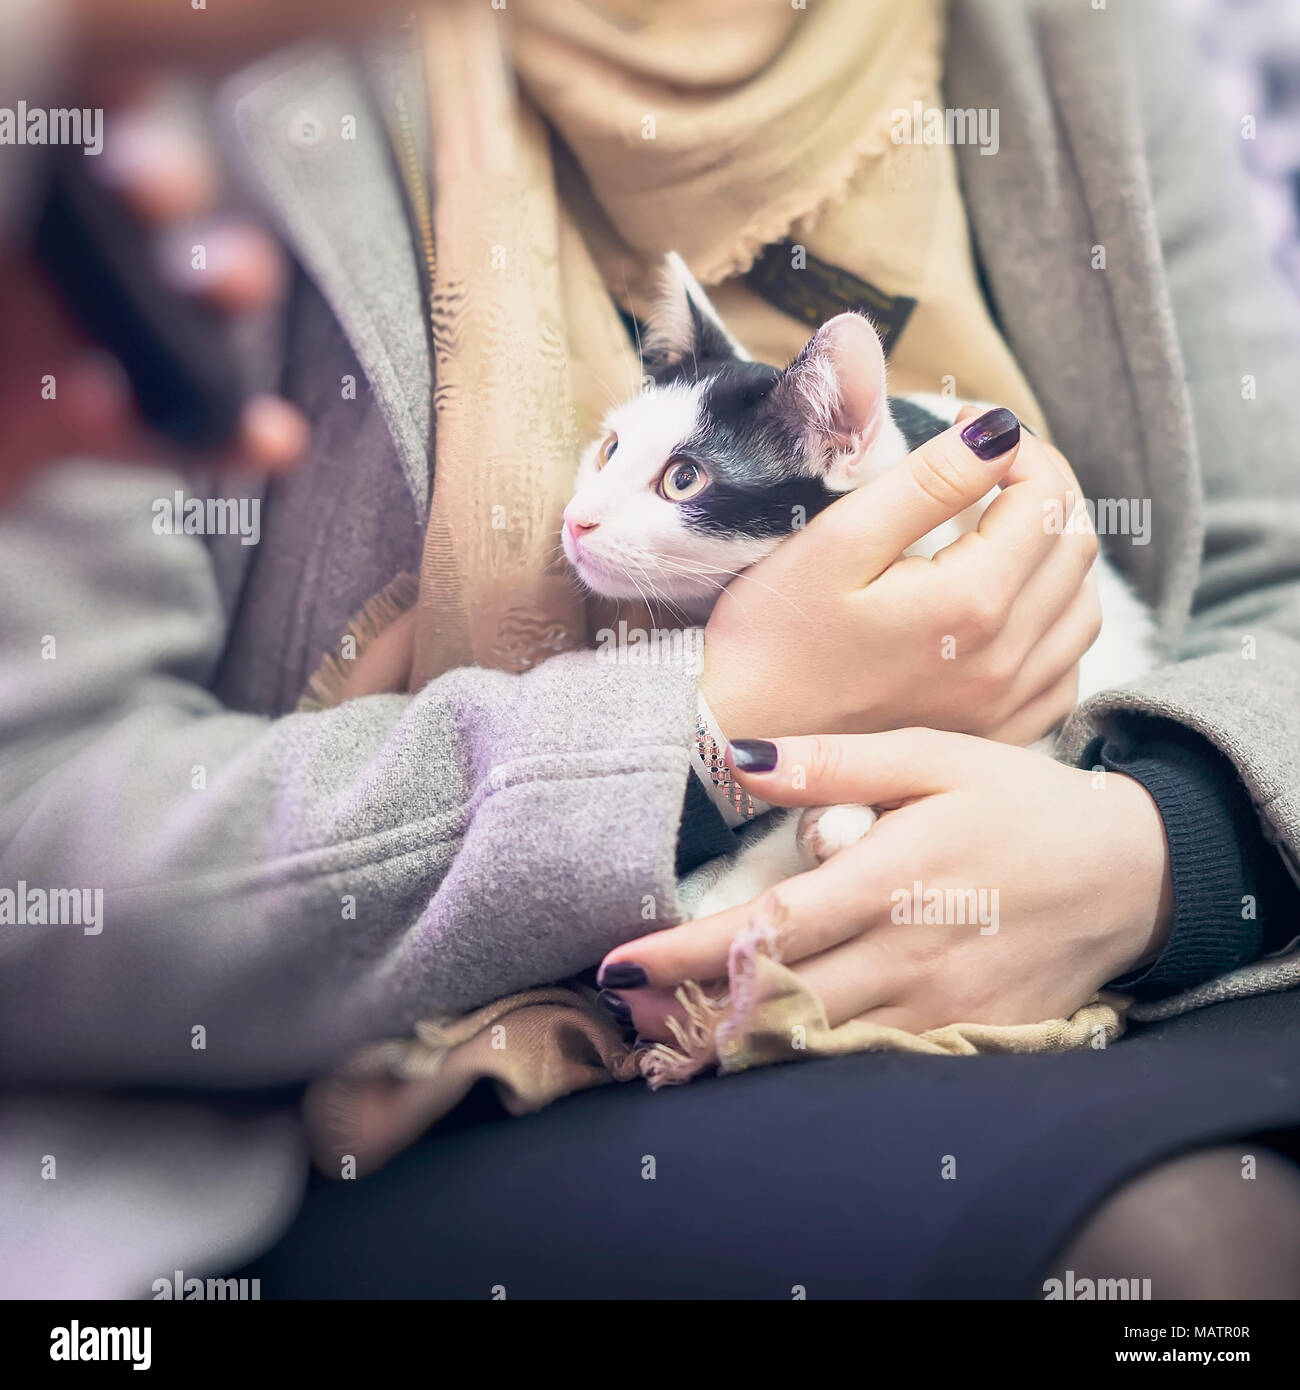 Frightened kitten in the hands of girl volunteer, in shelter for homeless animals. Girl takes cat to her home. Square - Stock Image